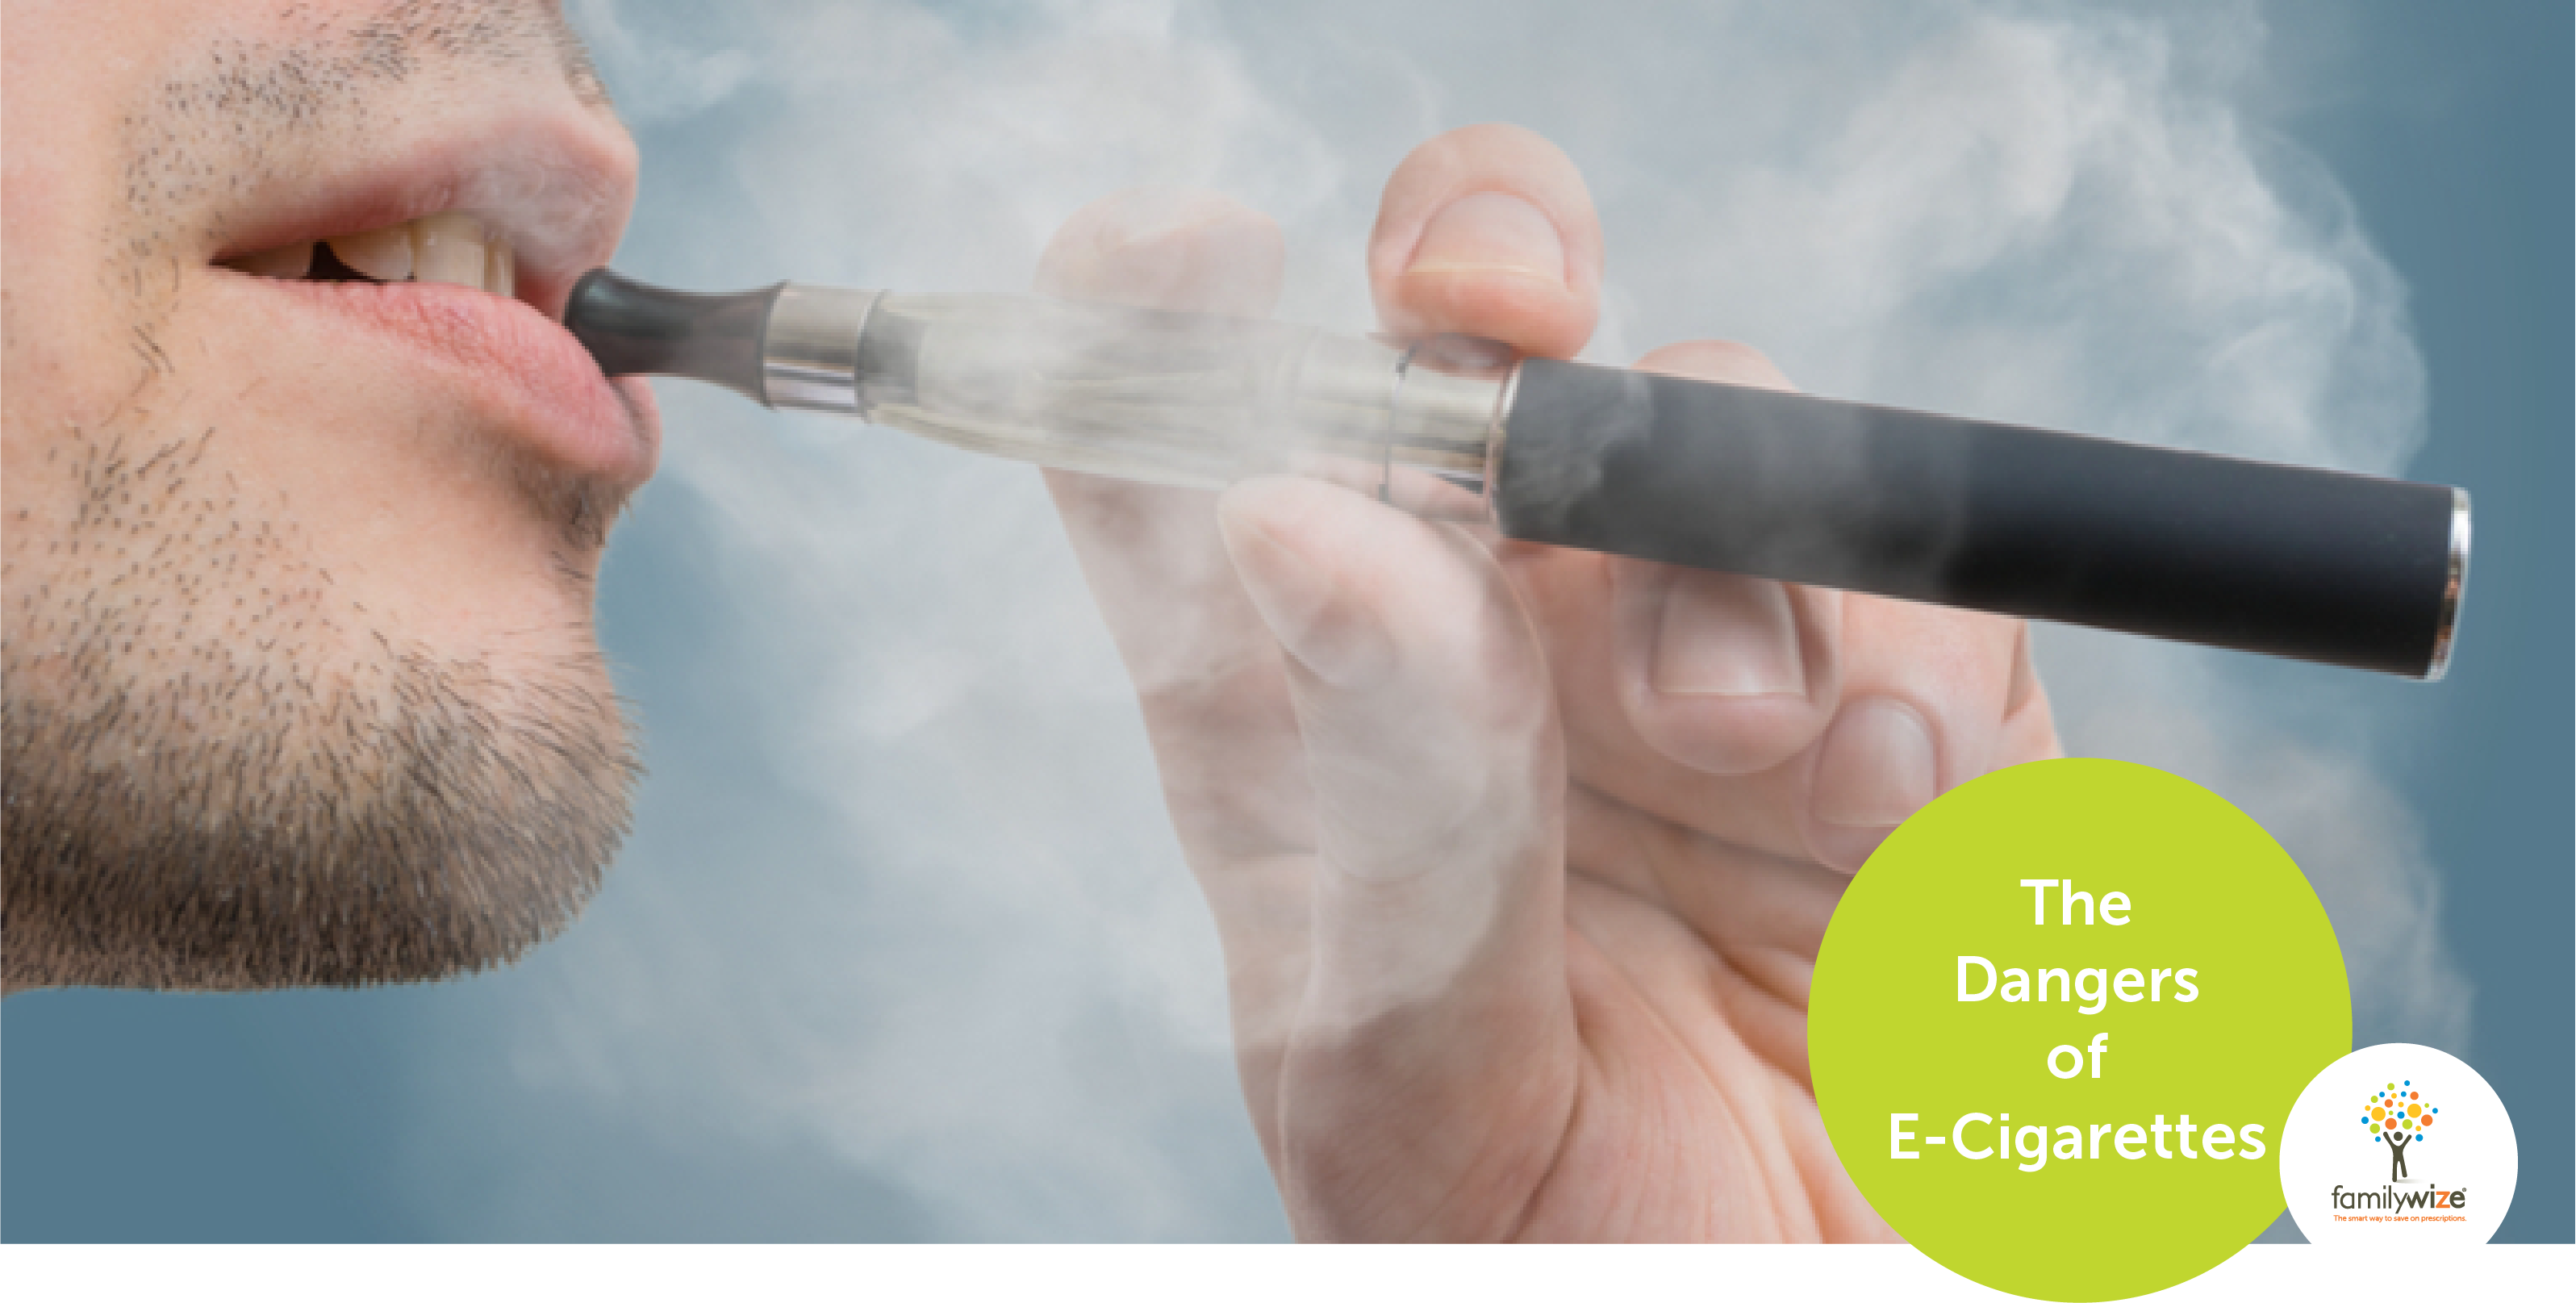 The Dangers of E-cigarettes